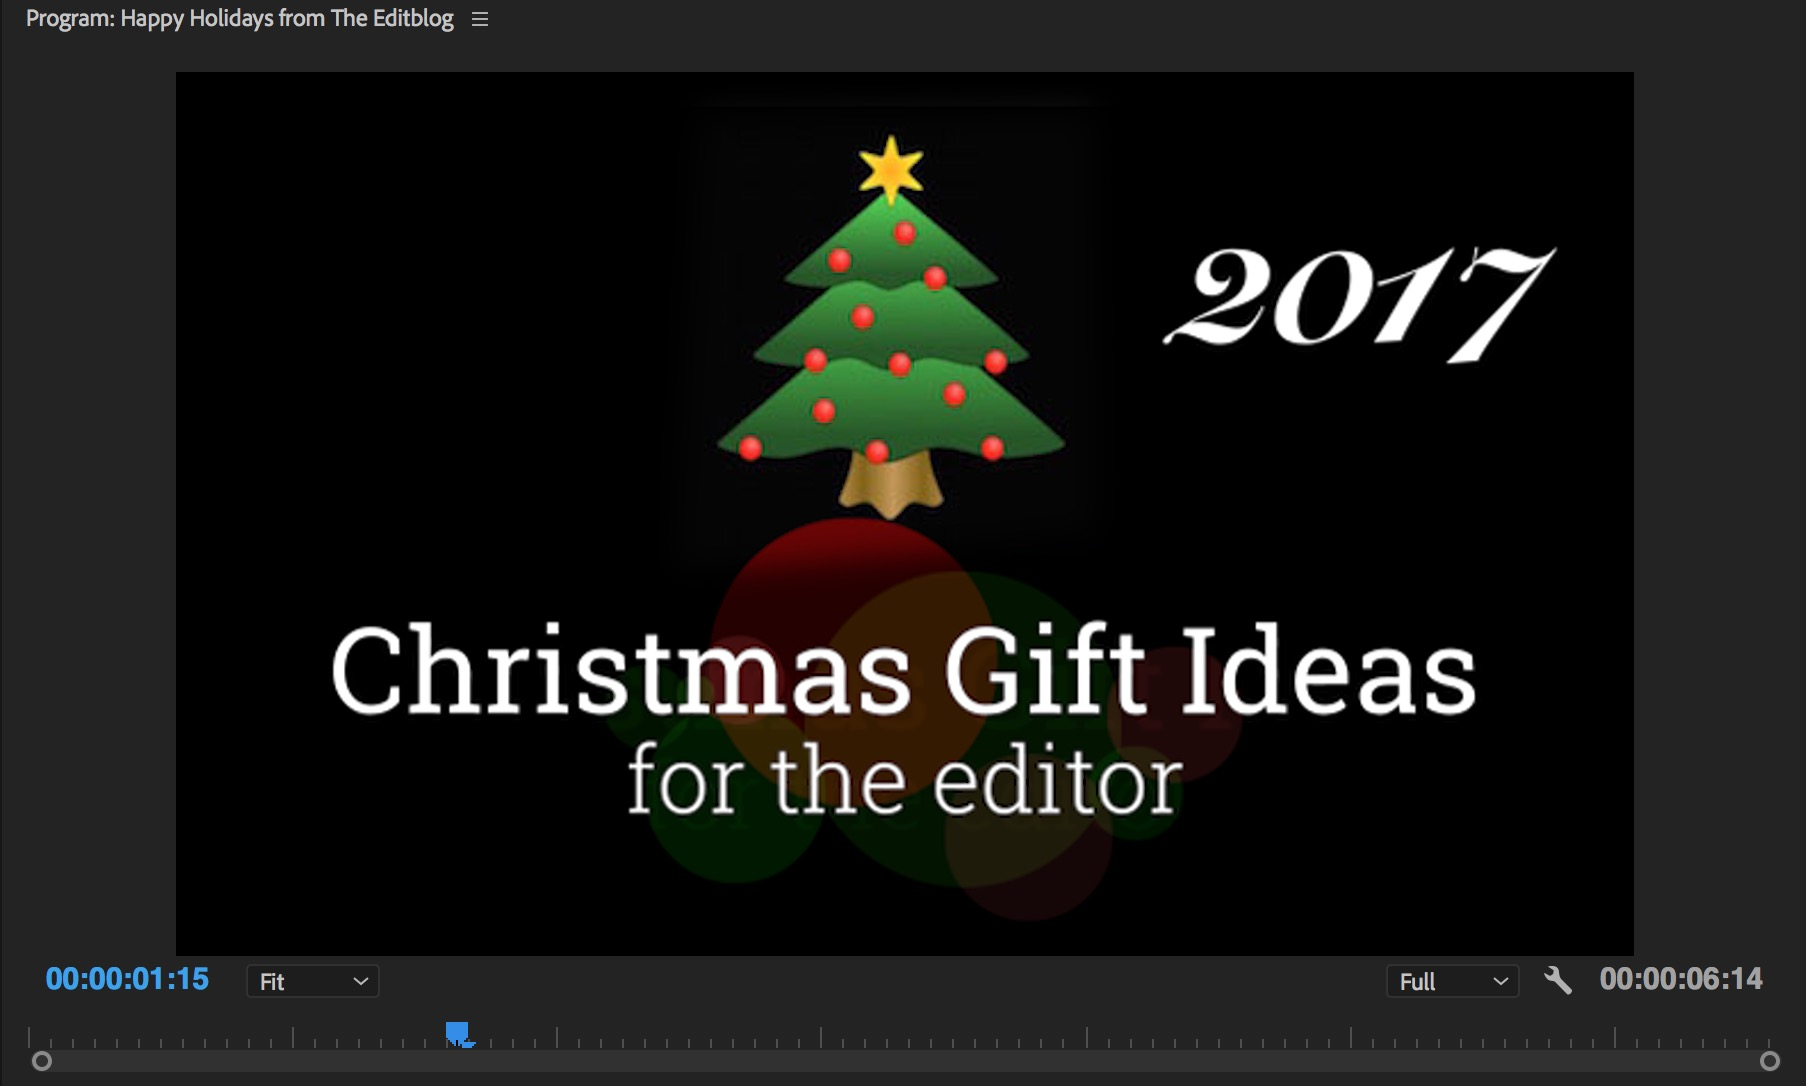 Christmas Gift Ideas for the Editor - 2017 edition 2